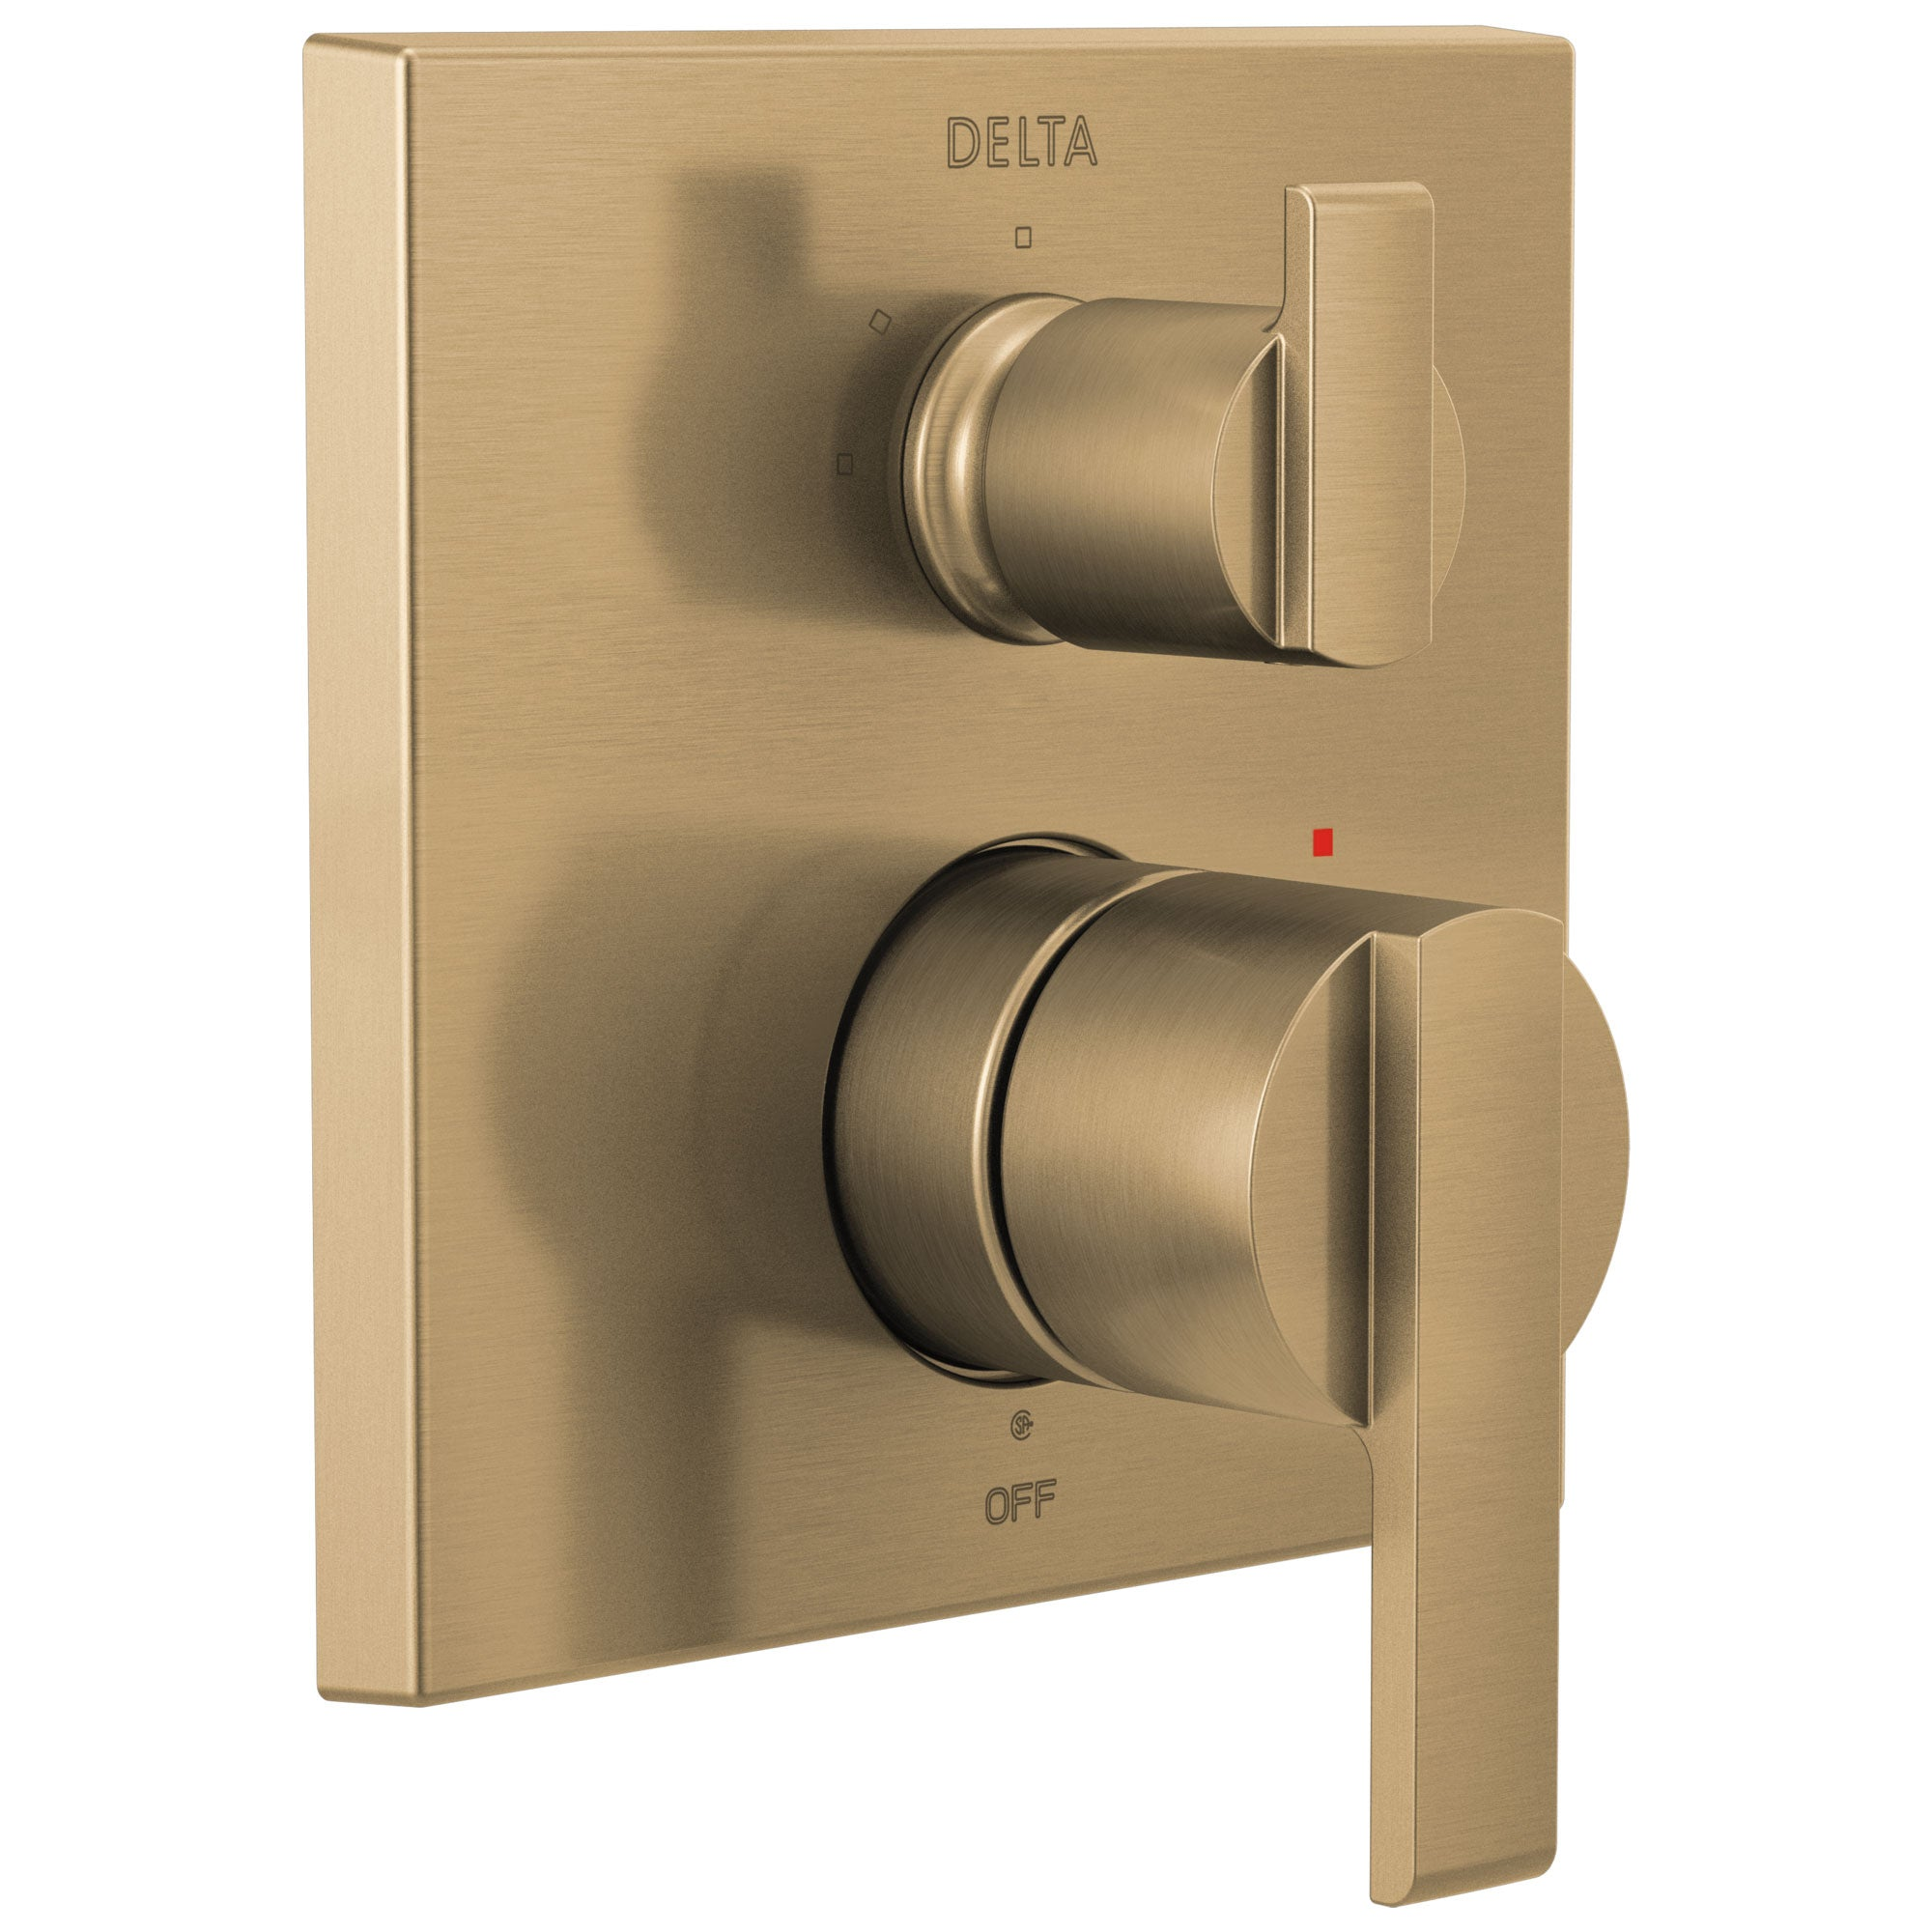 Delta Ara Champagne Bronze Finish Angular Modern 14 Series Shower System Control with 3-Setting Integrated Diverter Includes Valve and Handles D3205V